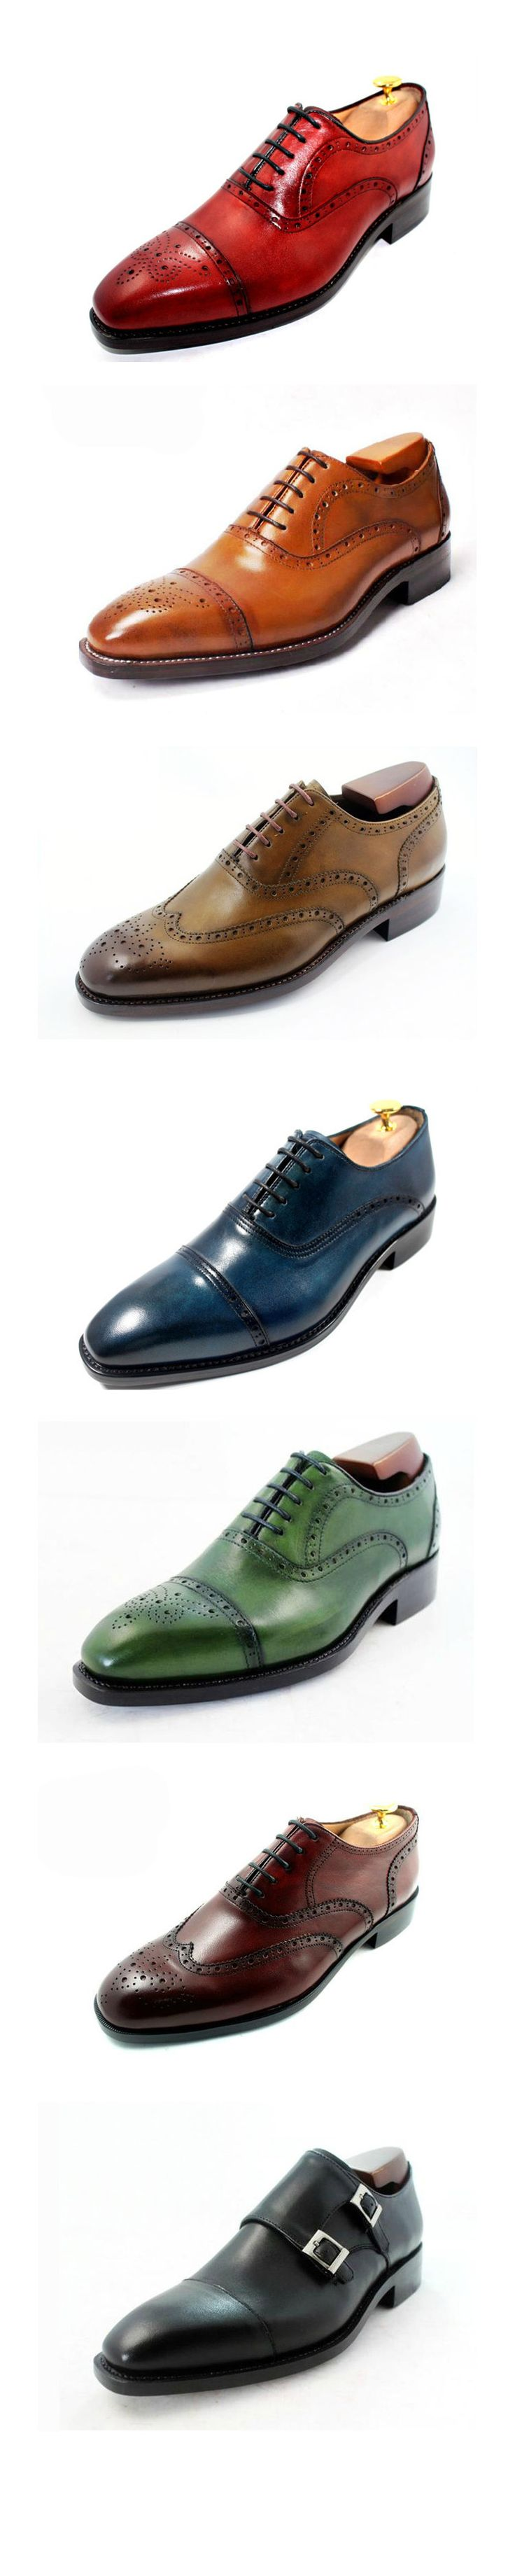 All our custom made shoes are made with highest quality leather, handmade by our...